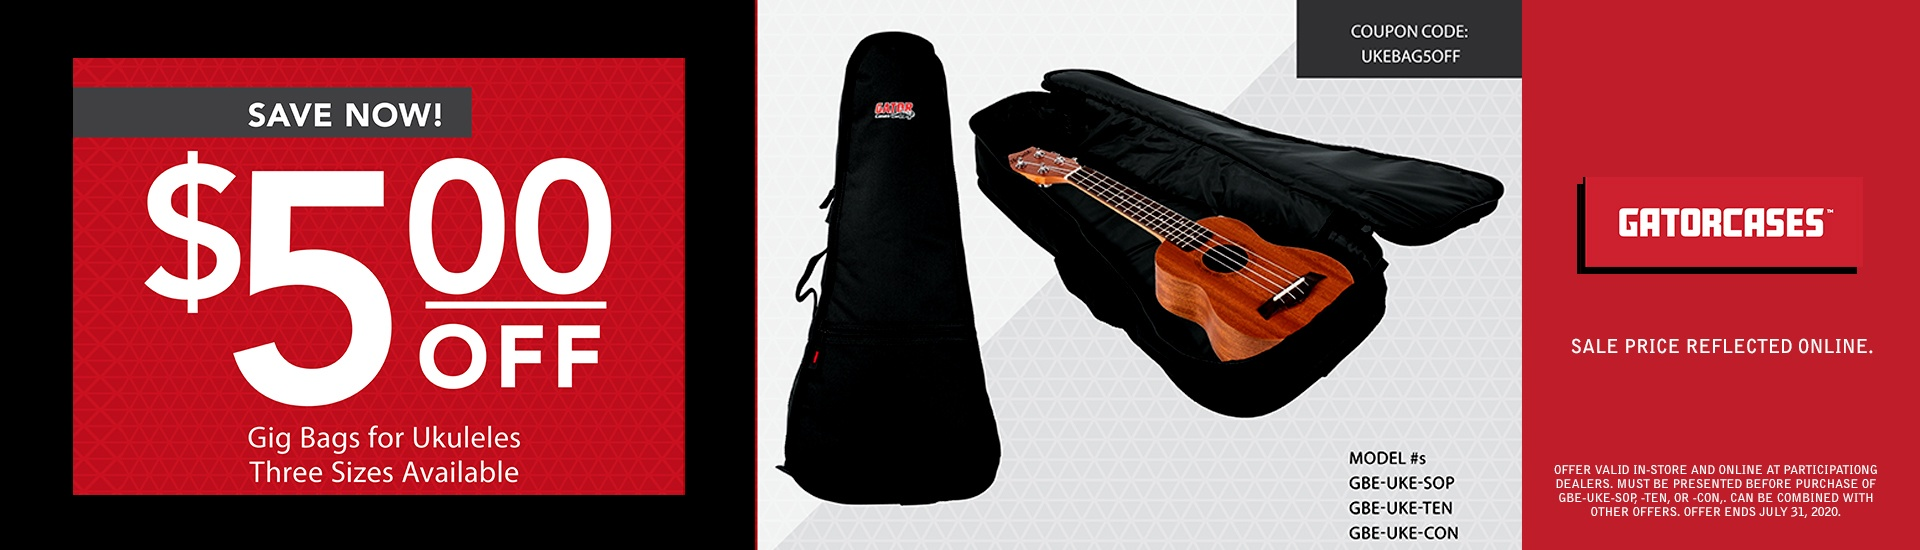 Ukulele cases on sale